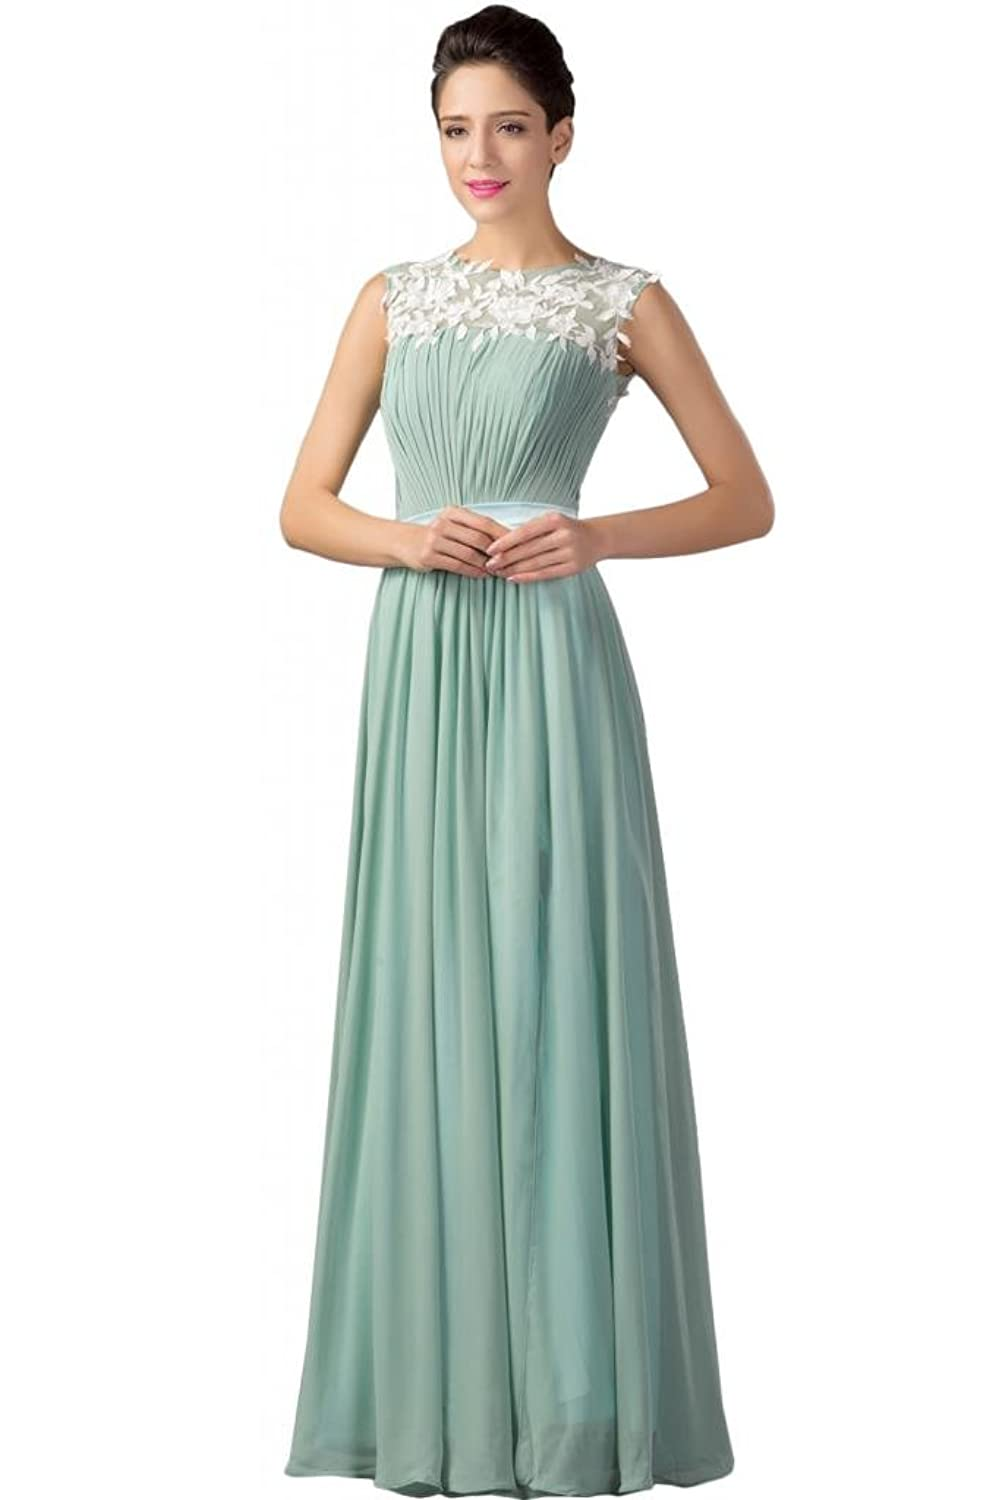 Sunvary Sleeveless Prom Evening Dresses Scoop Neckline Appliques Sash